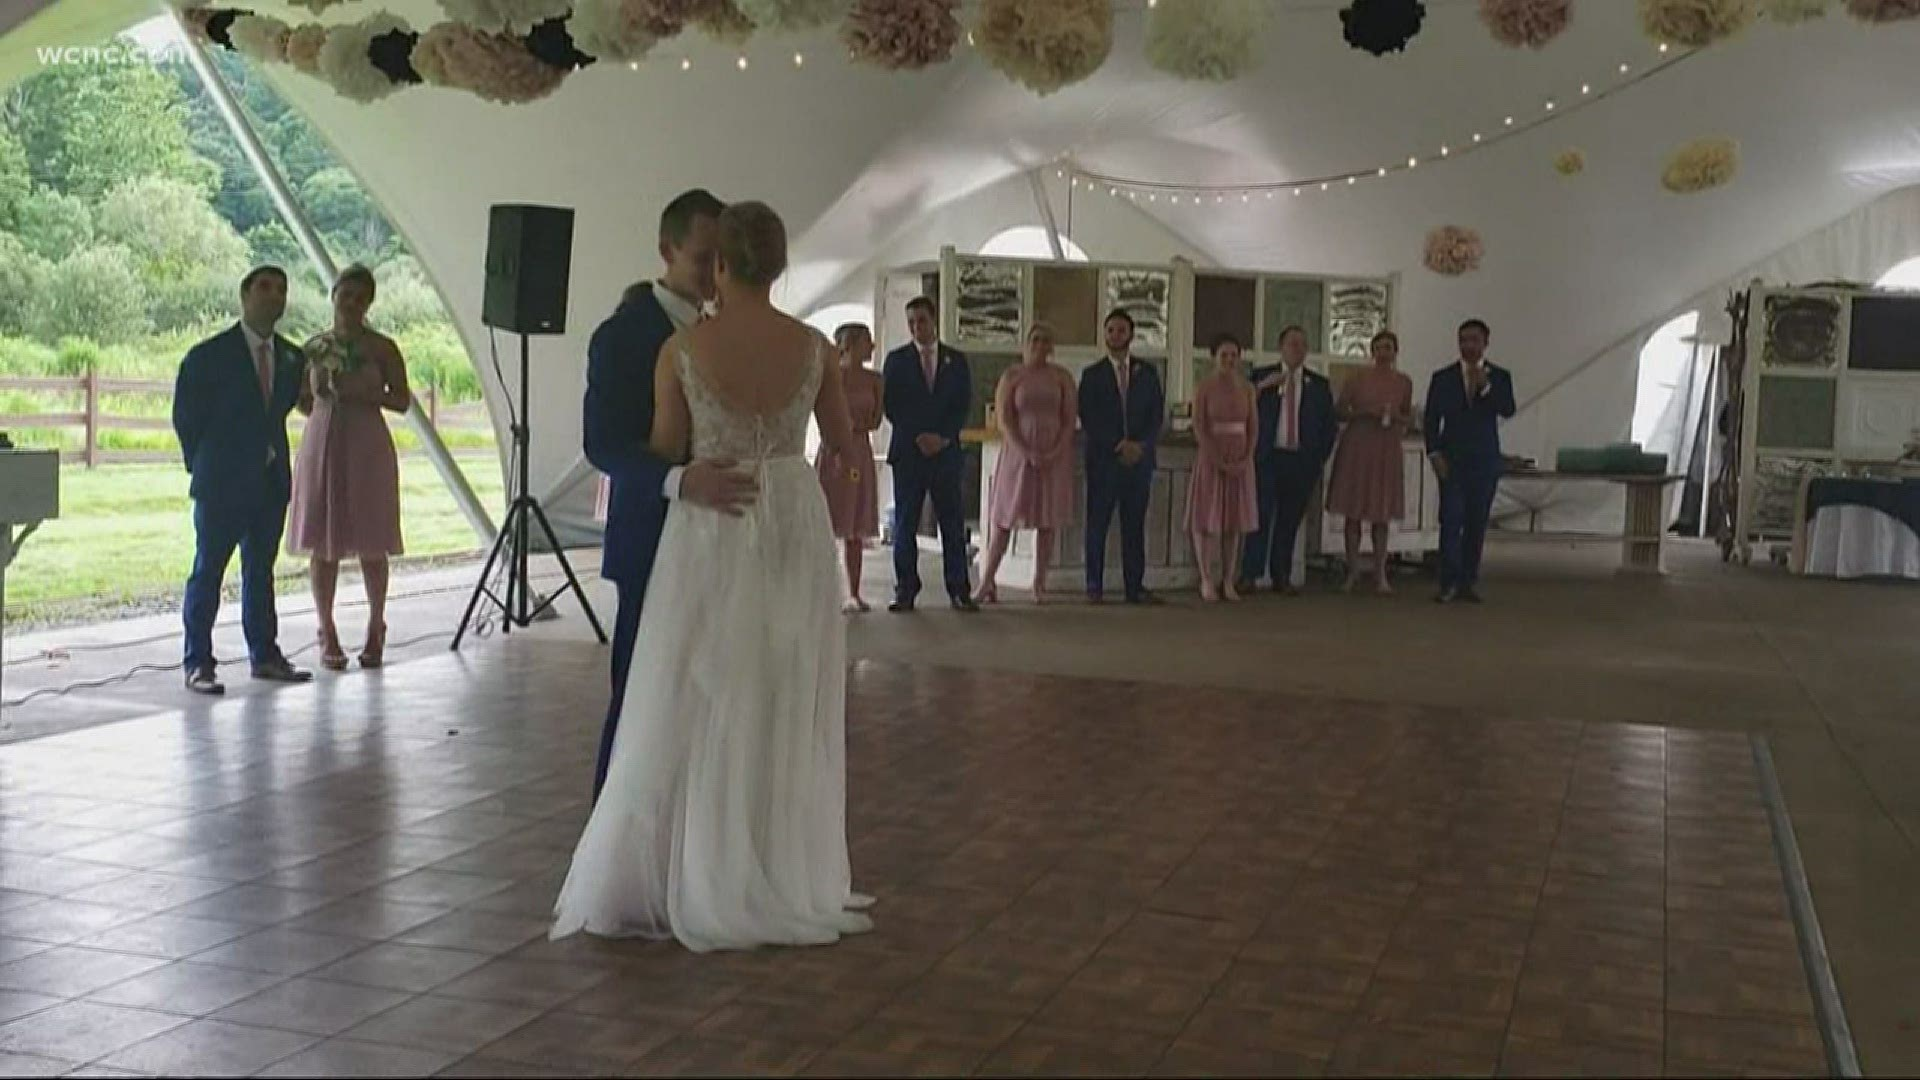 Finding wedding venues could be difficult for couples up ...